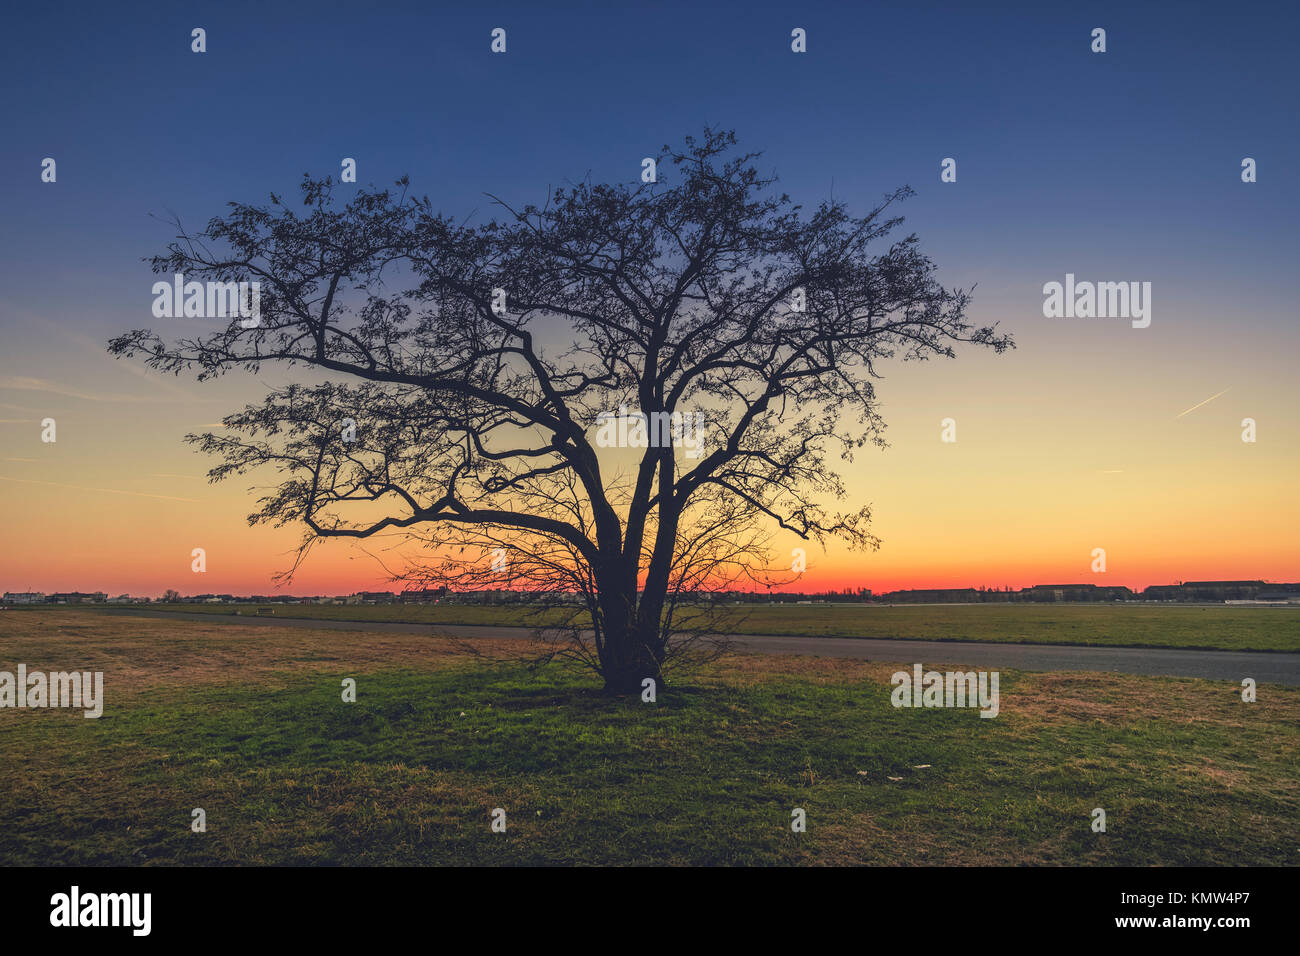 Solitary tree at dusk, in winter, at Tempelhof airport, Berlin. - Stock Image